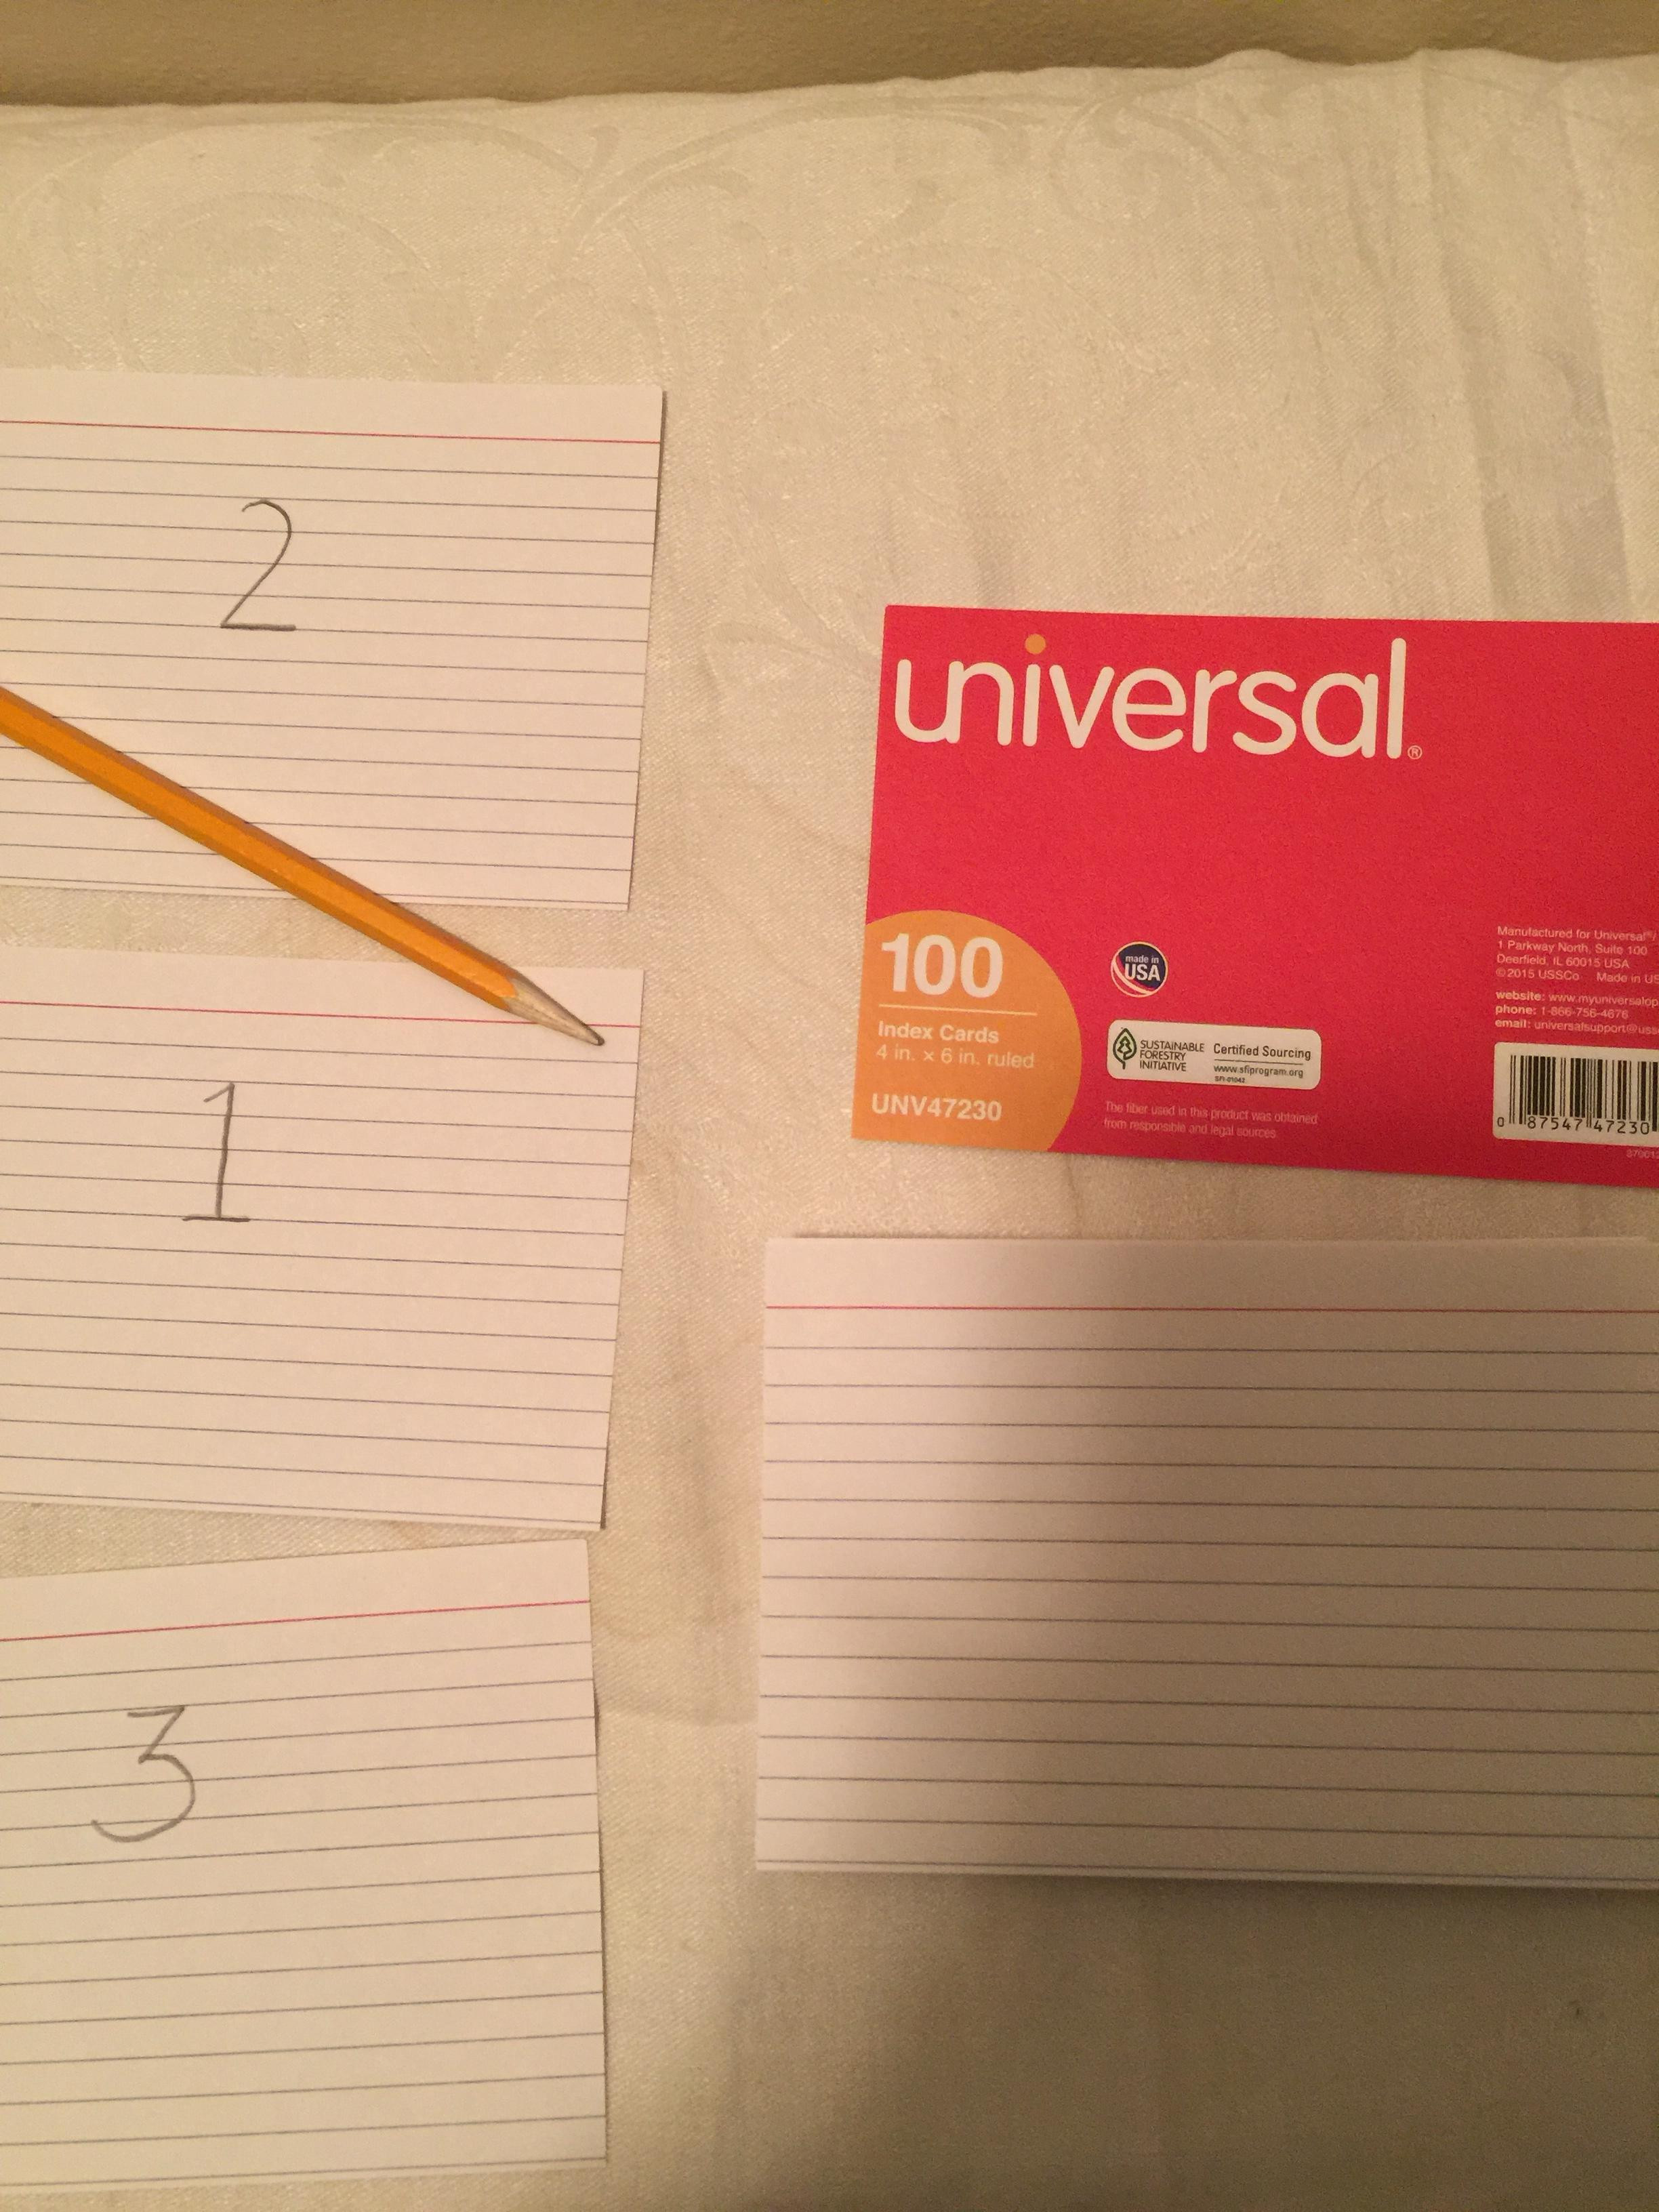 Note Card Cafe Coupon Universal Unv47230 4